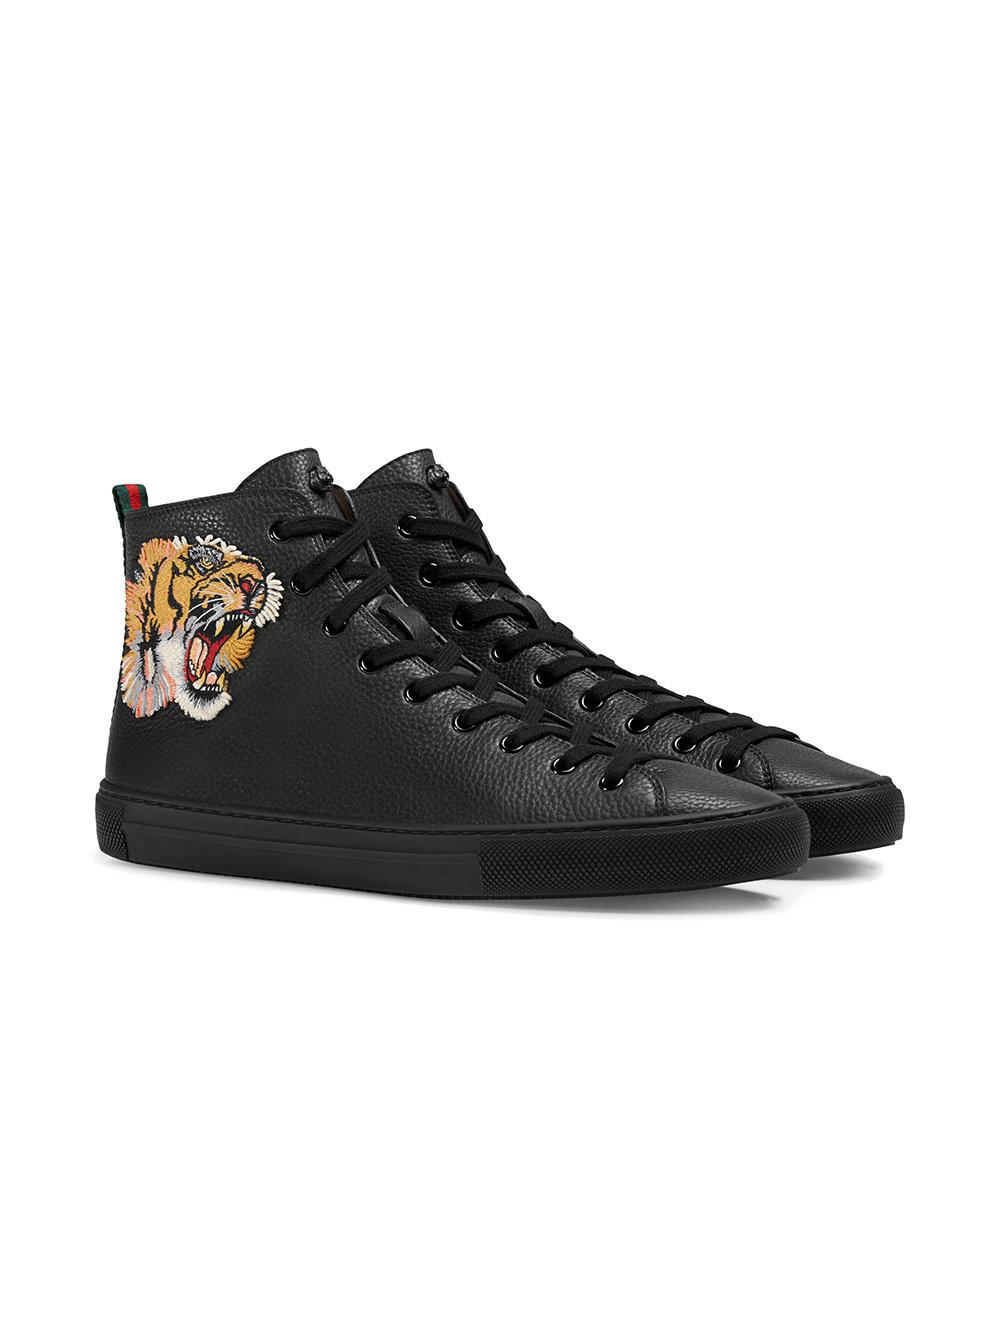 be056d1a593 Gucci Sneaker Alta In Pelle Con Tigre in Black for Men - Save 11% - Lyst